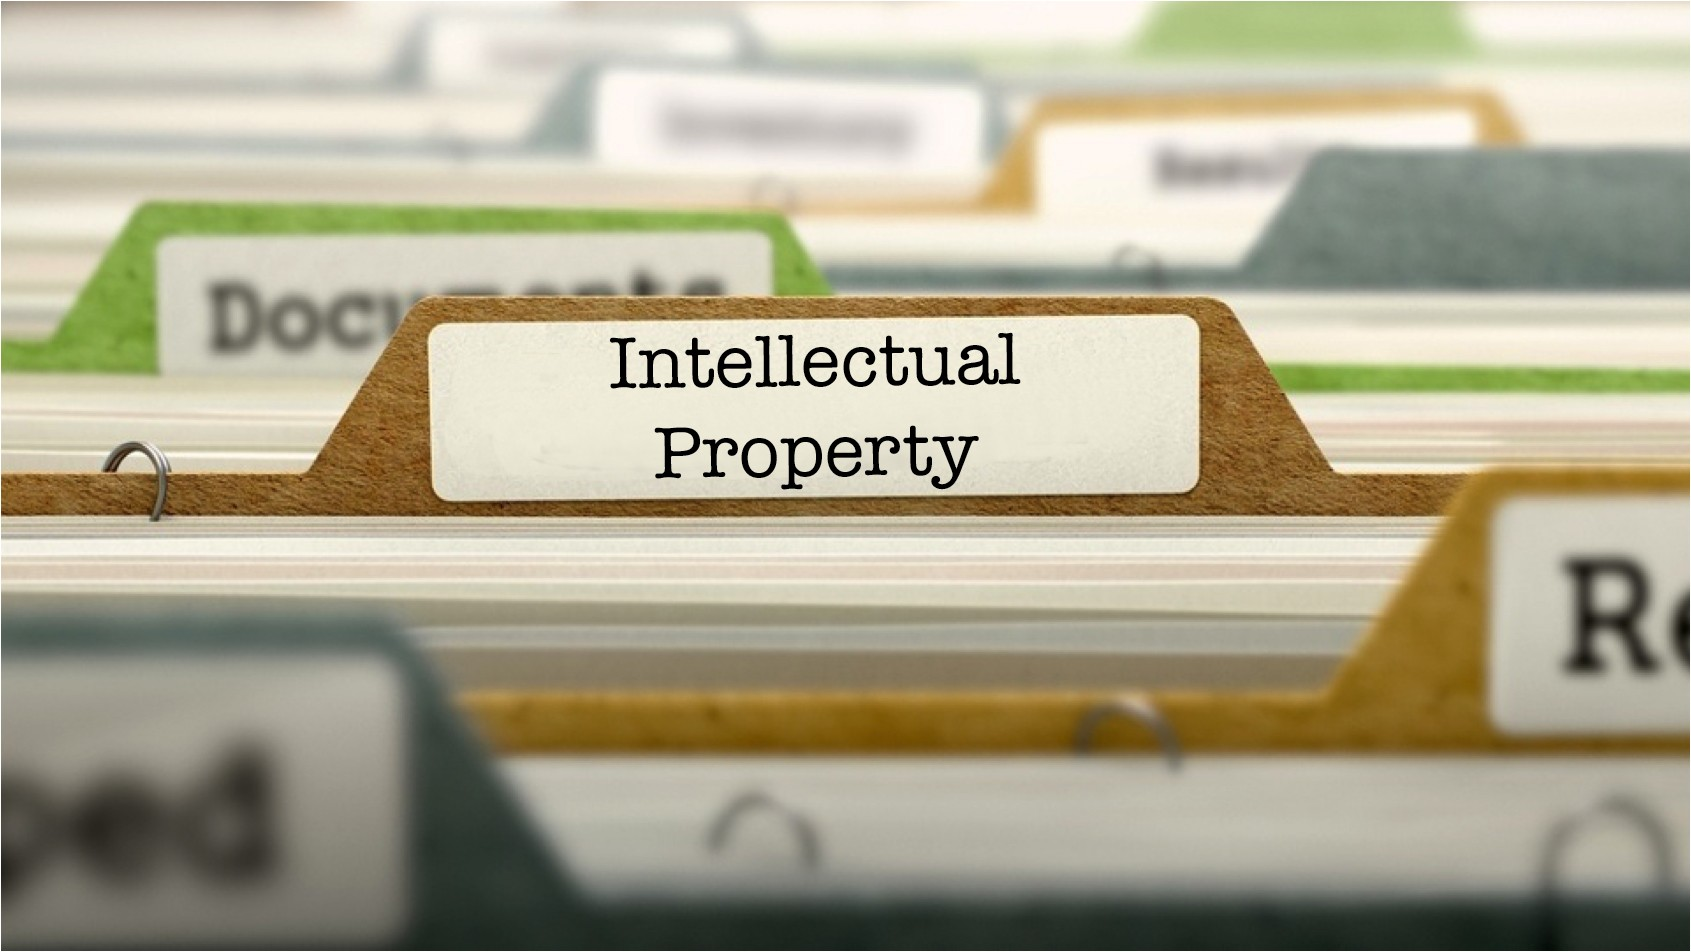 [White Paper] Open innovation in business: incompatible with Intellectual Property?